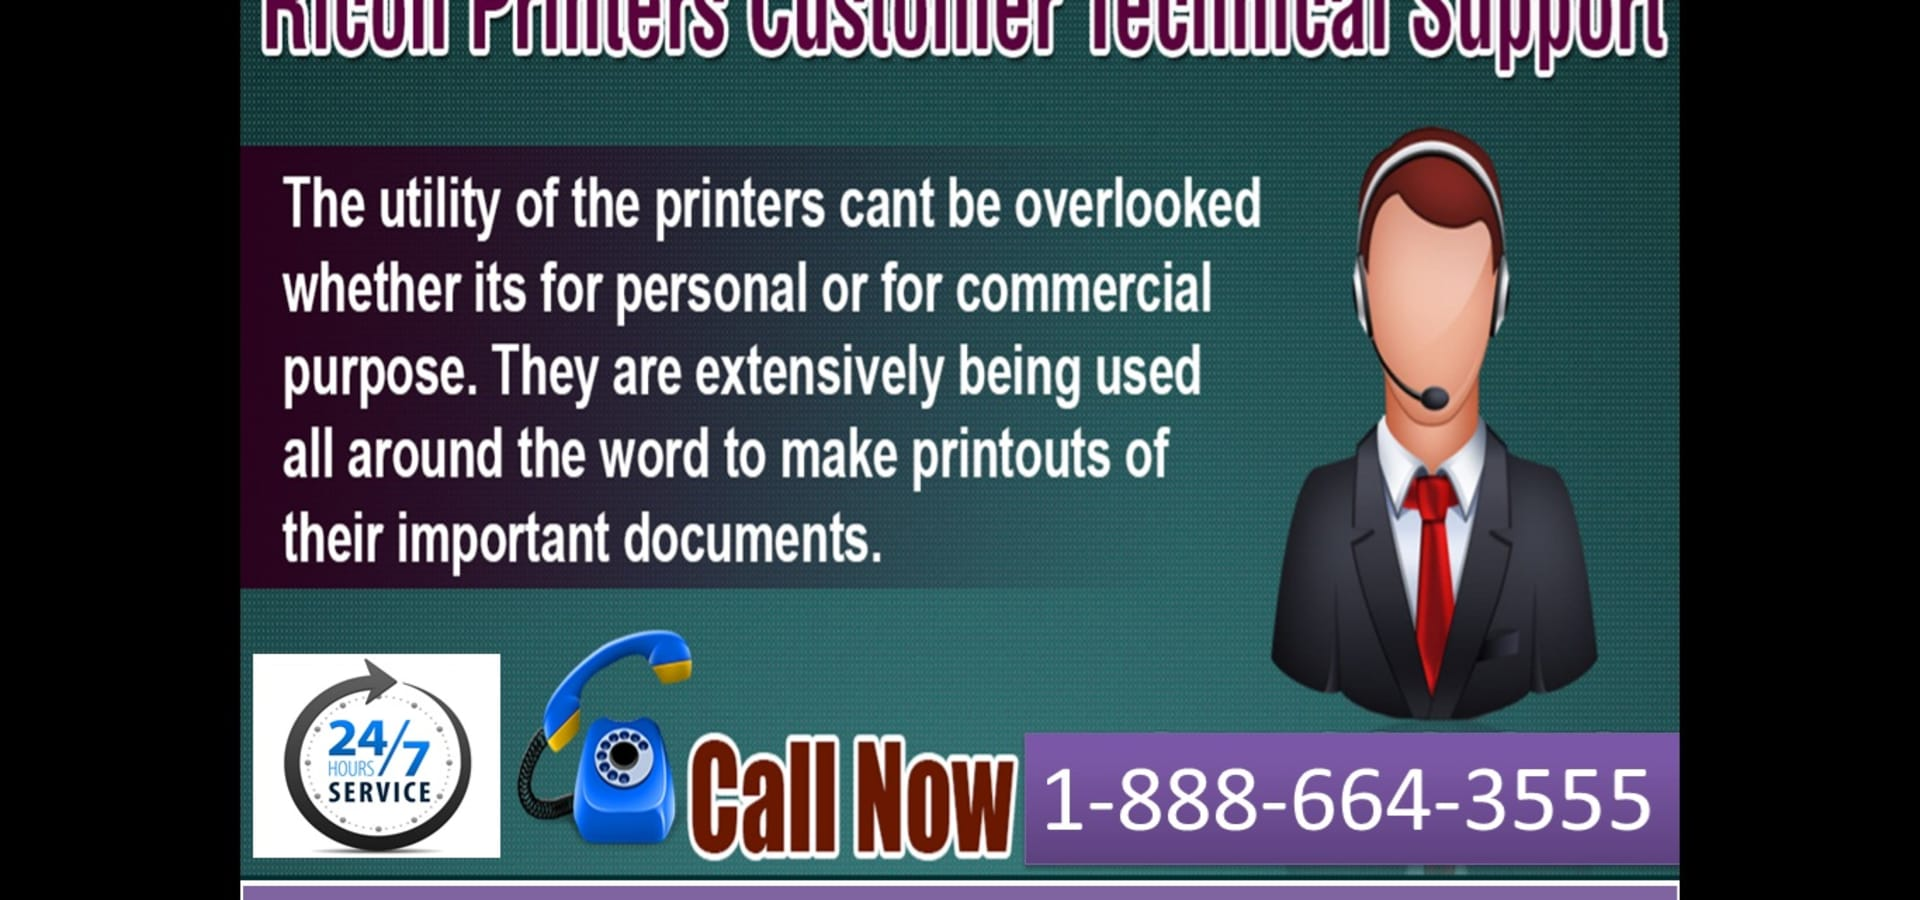 Ricoh Printer not working at all? Dial 1-888-664-3555 our Ricoh